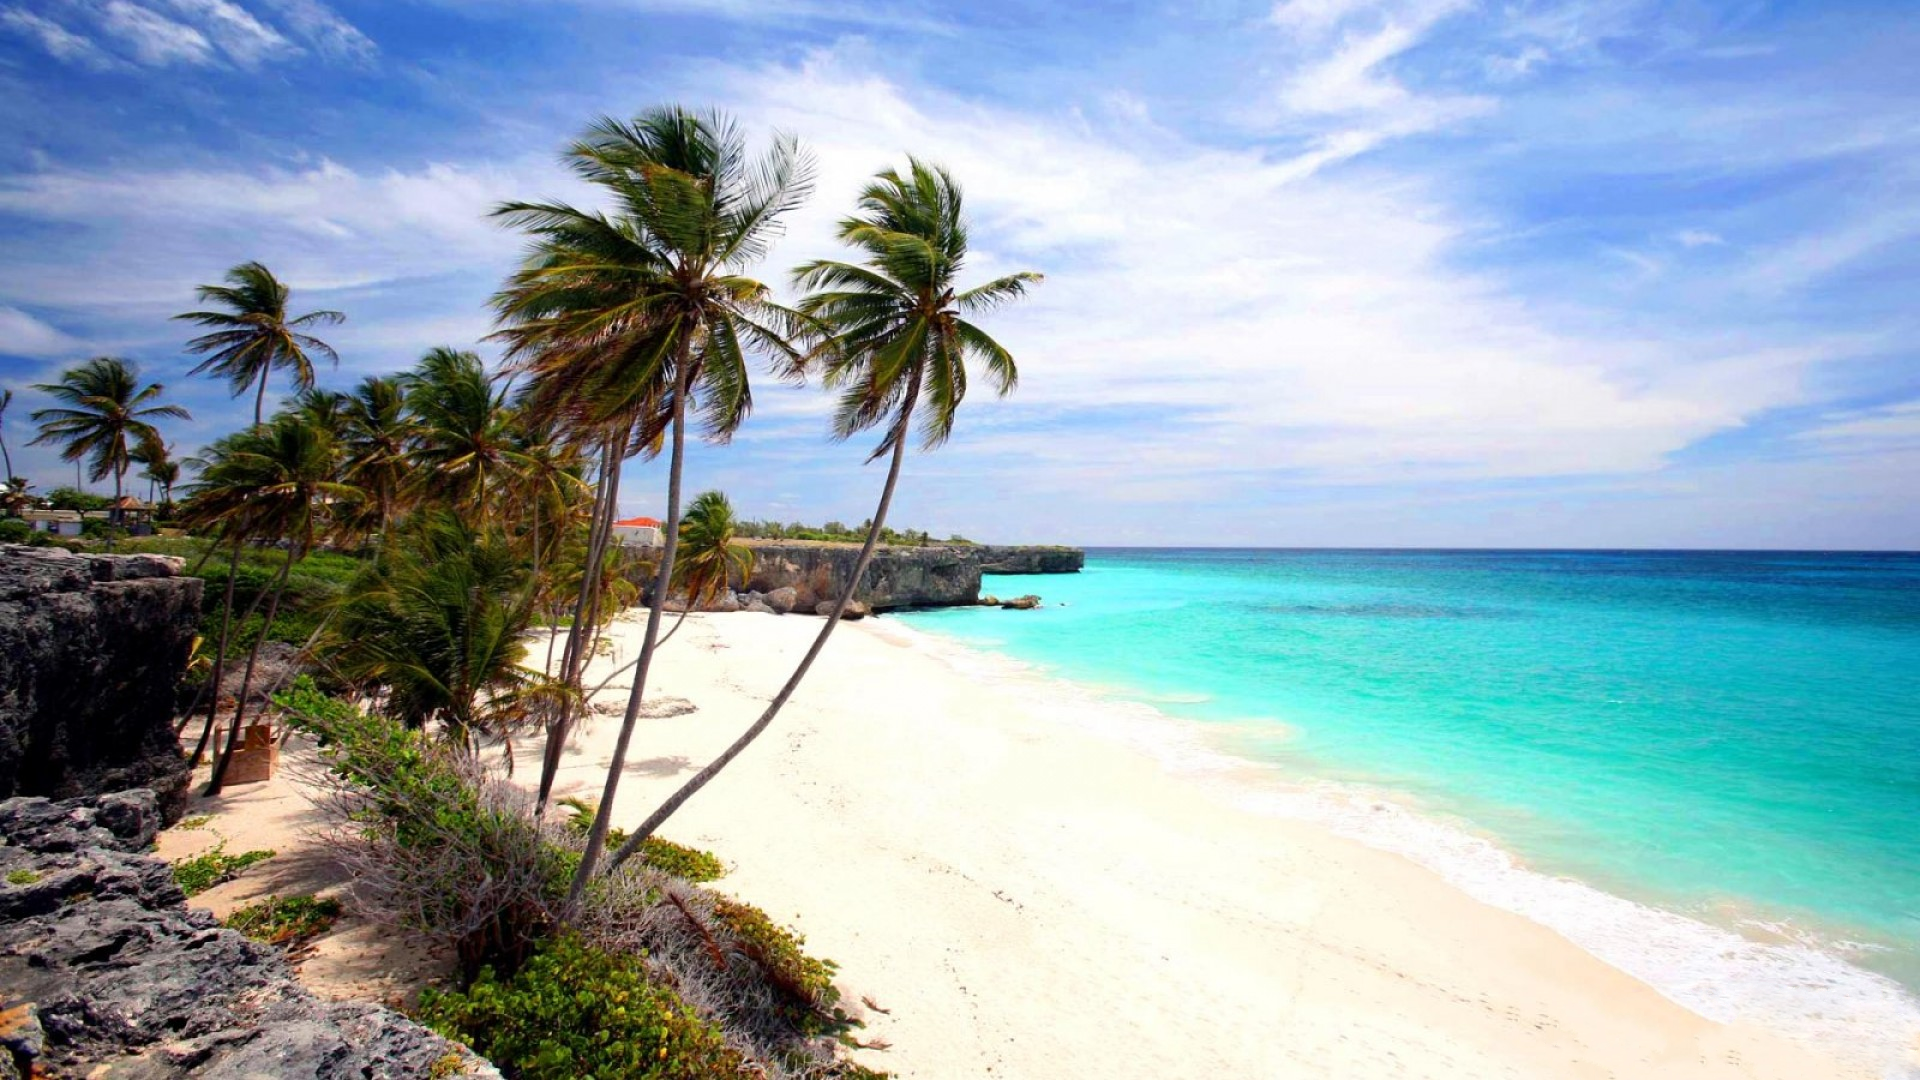 3 Barbados HD Wallpapers Background Images 1920x1080